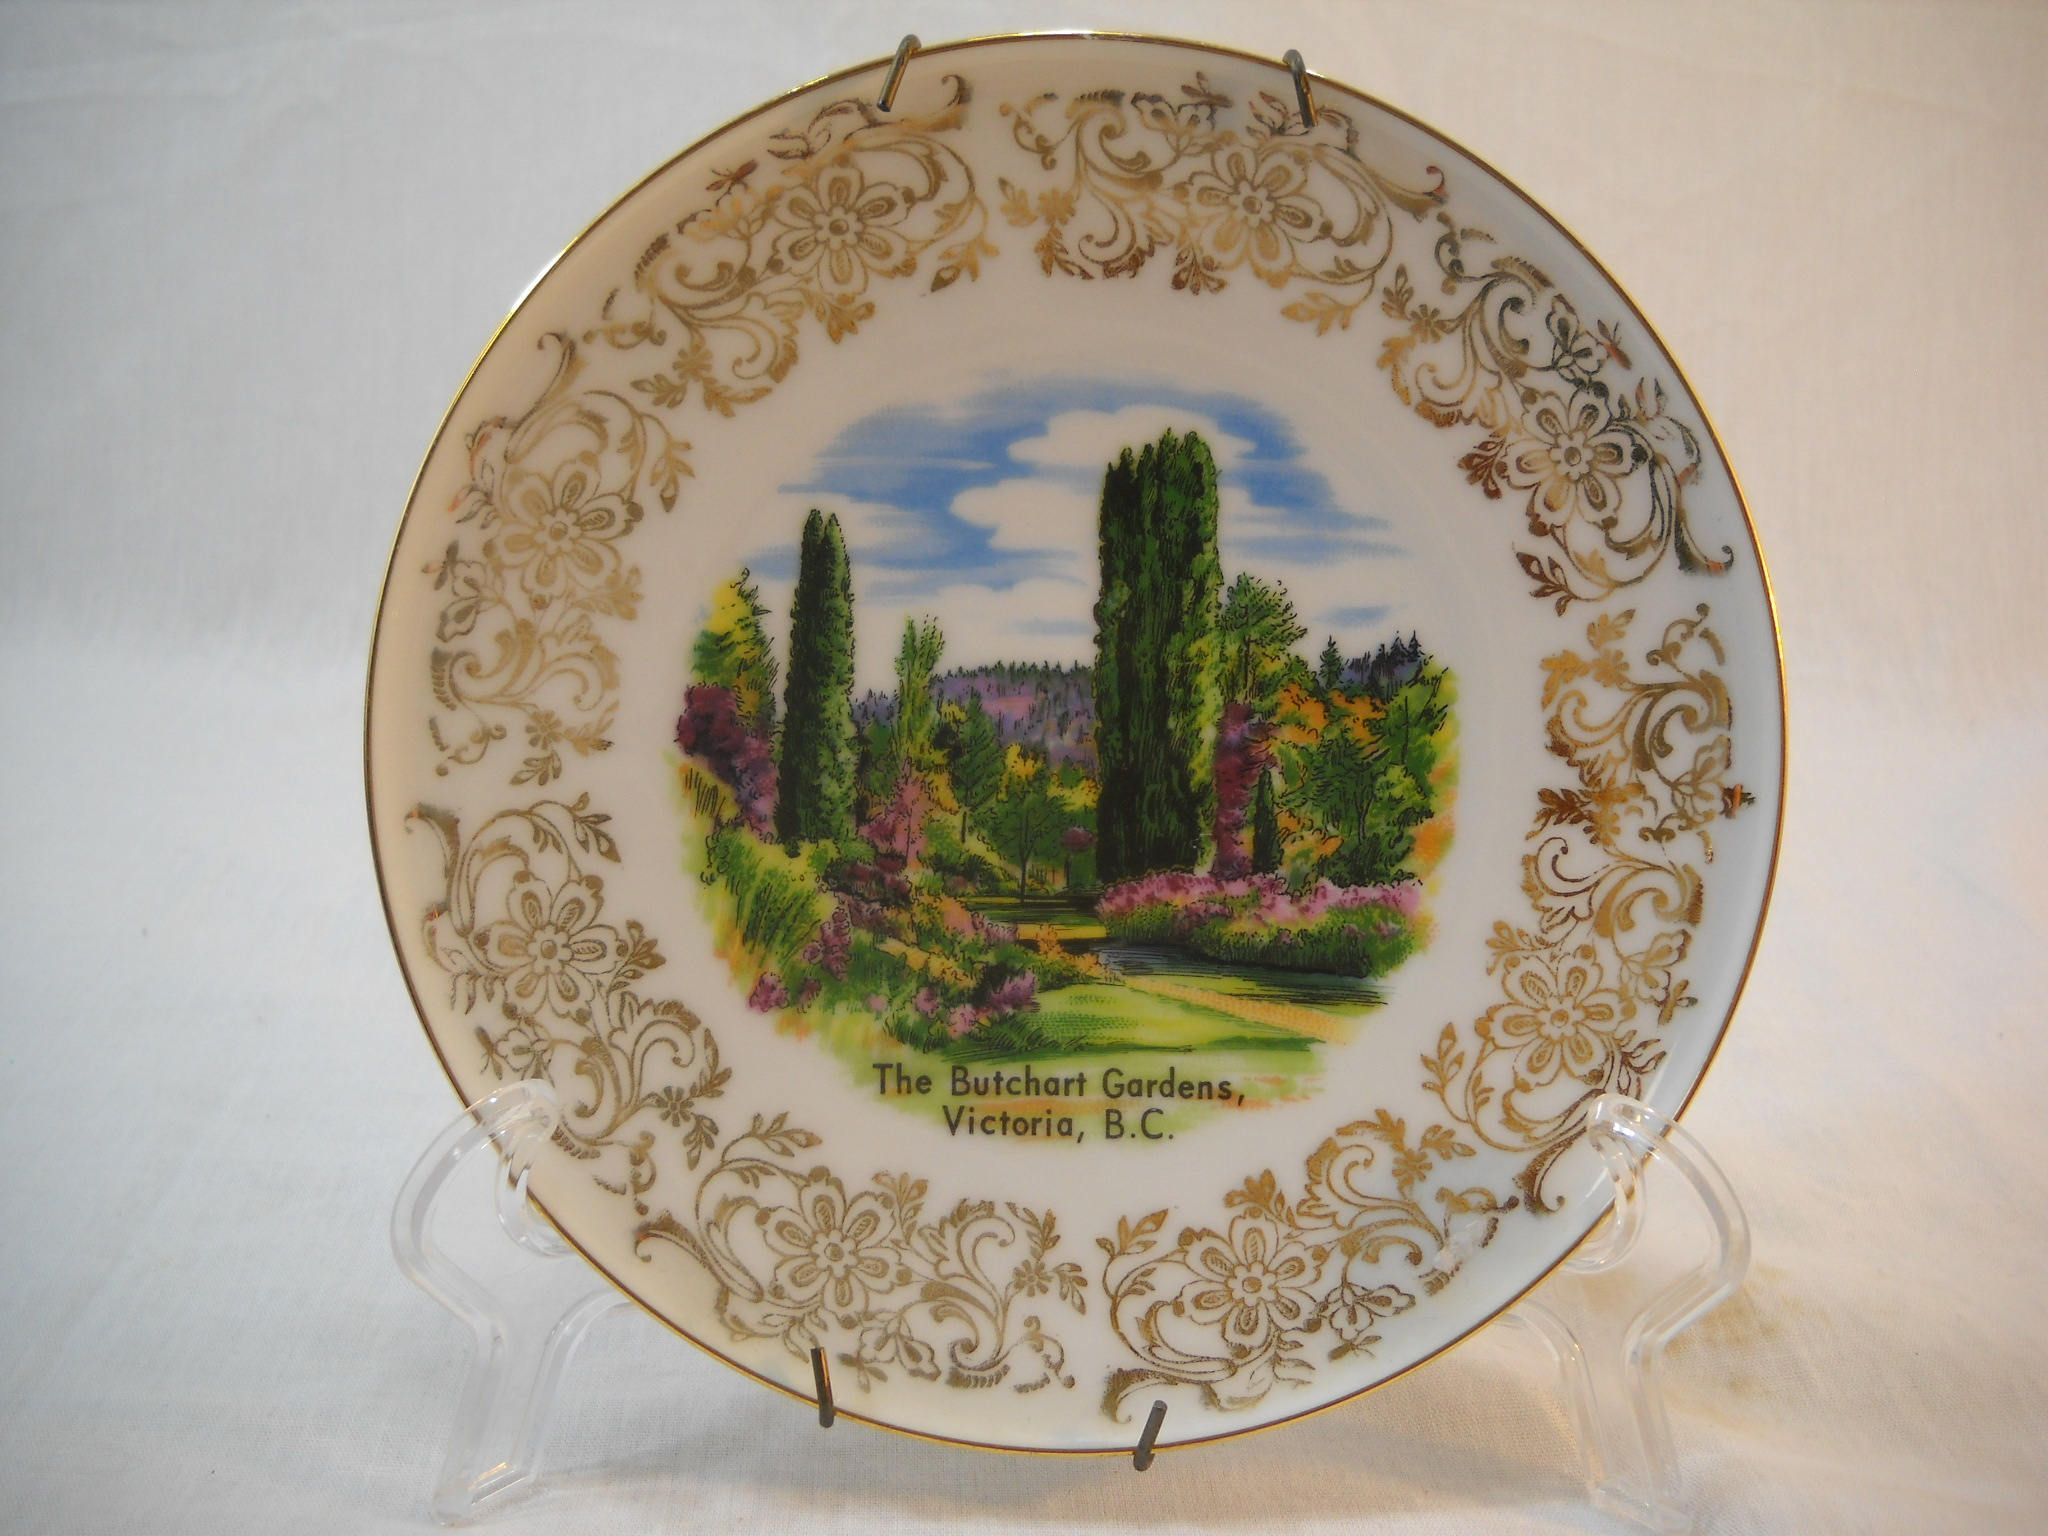 The Butchart Gardens Victoria BC Souvenir Wall Plate Made In Western Germany #butchartgardens